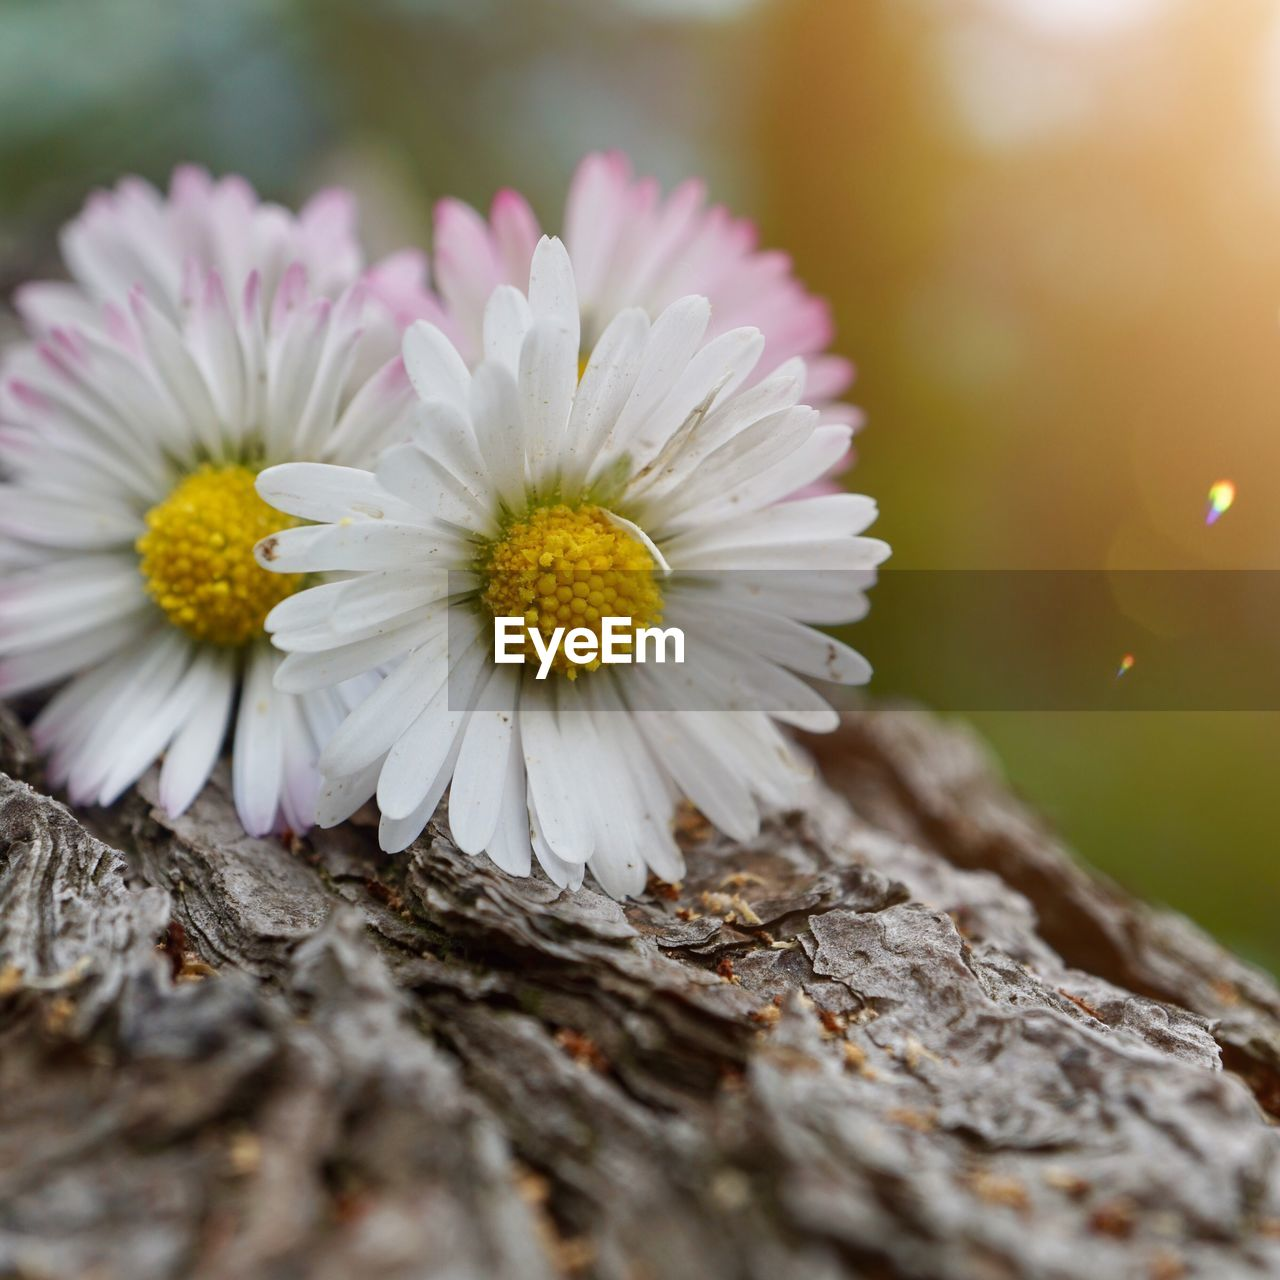 flower, flowering plant, plant, fragility, vulnerability, close-up, freshness, petal, beauty in nature, selective focus, flower head, inflorescence, nature, growth, yellow, no people, day, daisy, pollen, white color